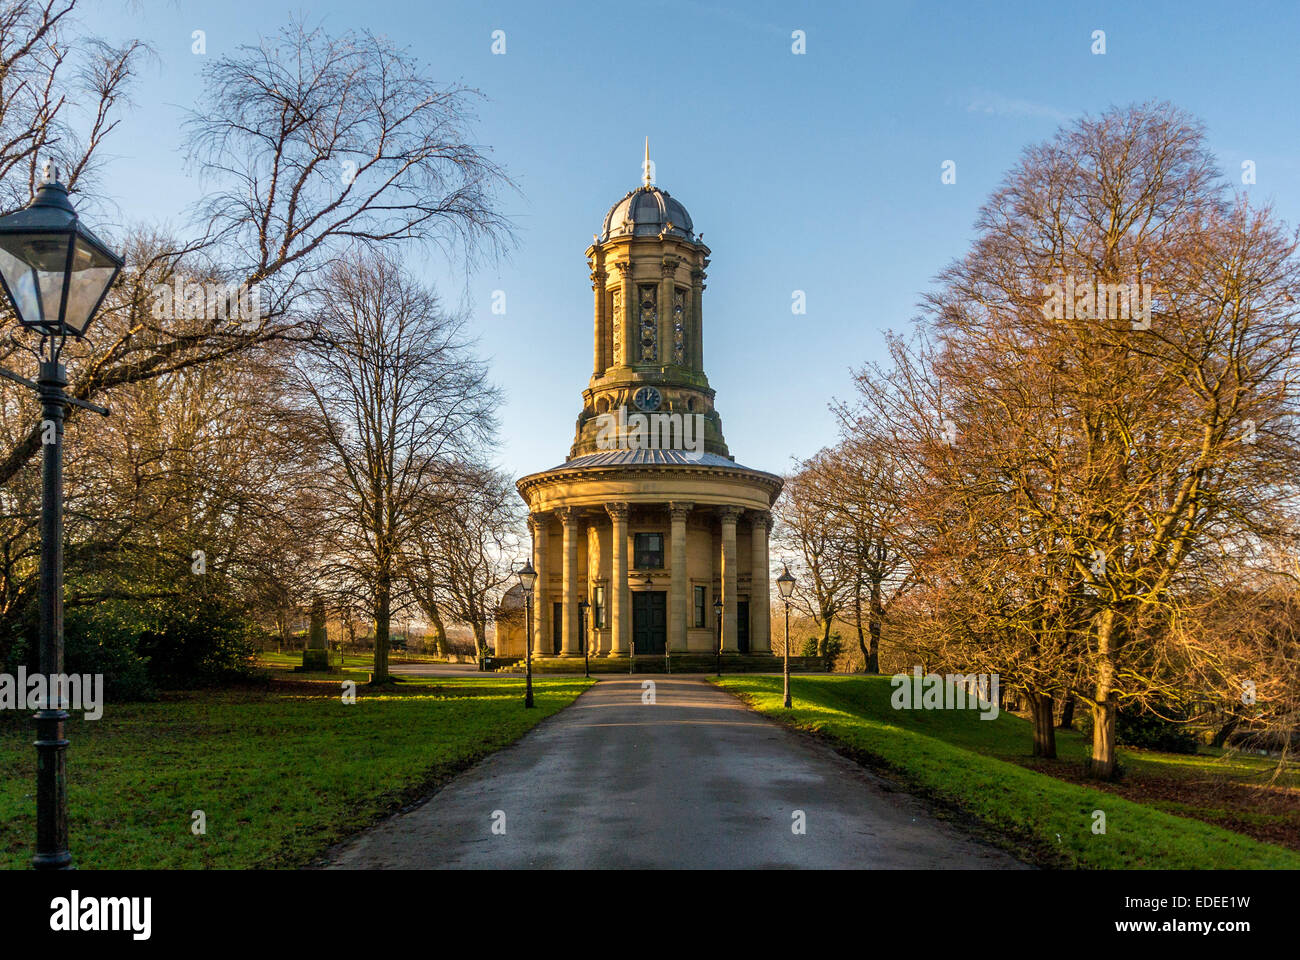 Saltaire United Reformed Church, Saltaire, West Yorkshire, UK. - Stock Image